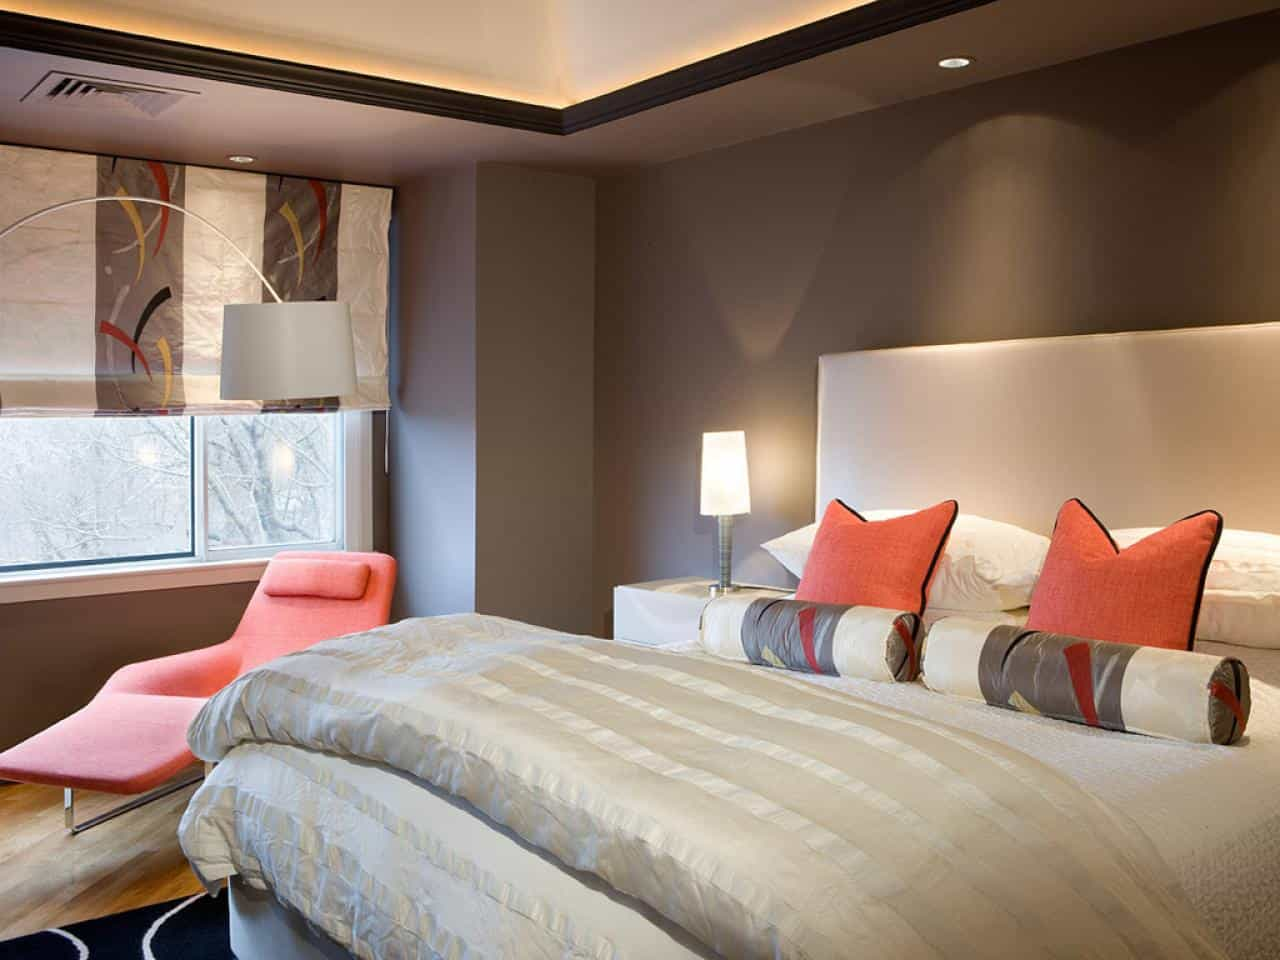 Pop of color works in any bedroom setting because it adds a focal point to the area